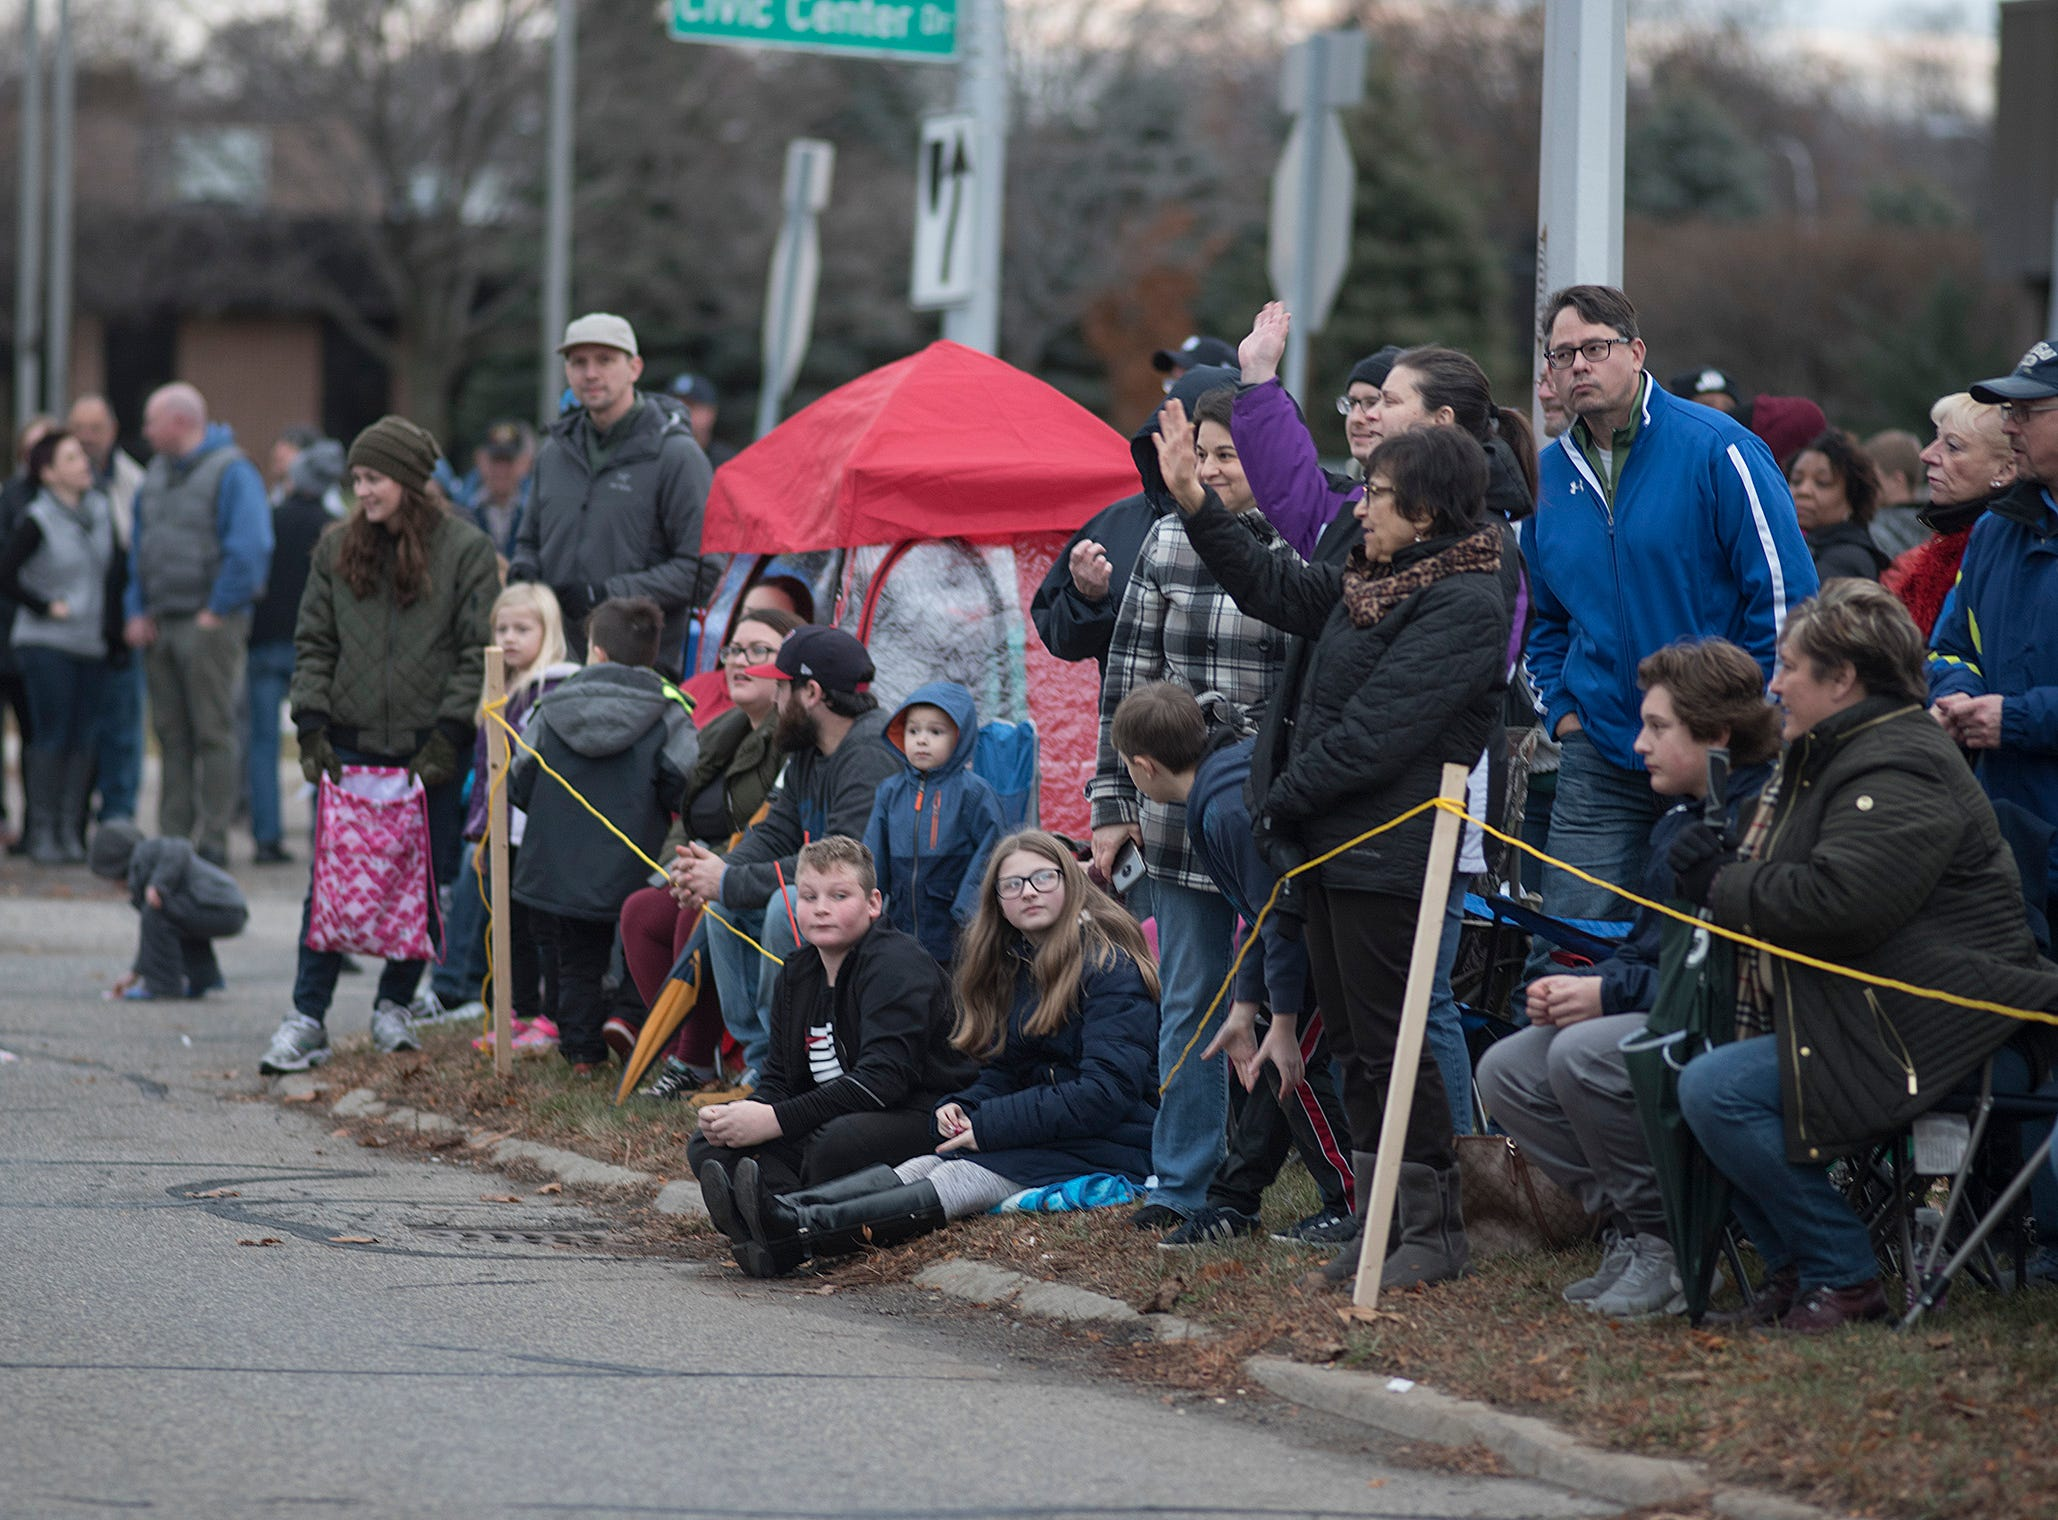 The first half of the parade was dry, but it began to rain. Most of the crowd stayed.